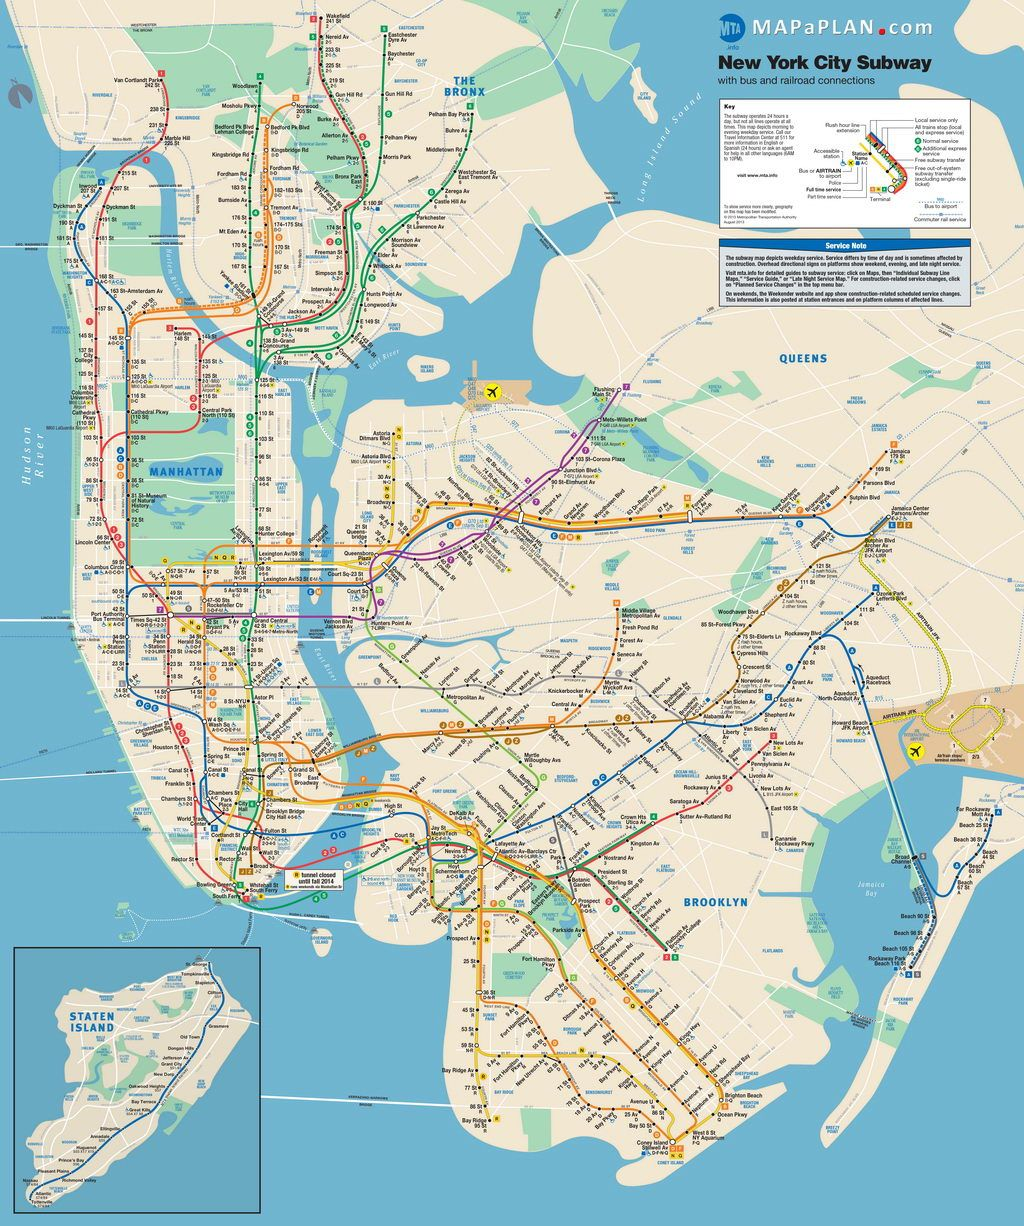 greatthingstodowithkidschildreninteractivecolorfulnew – Tourist Map Nyc